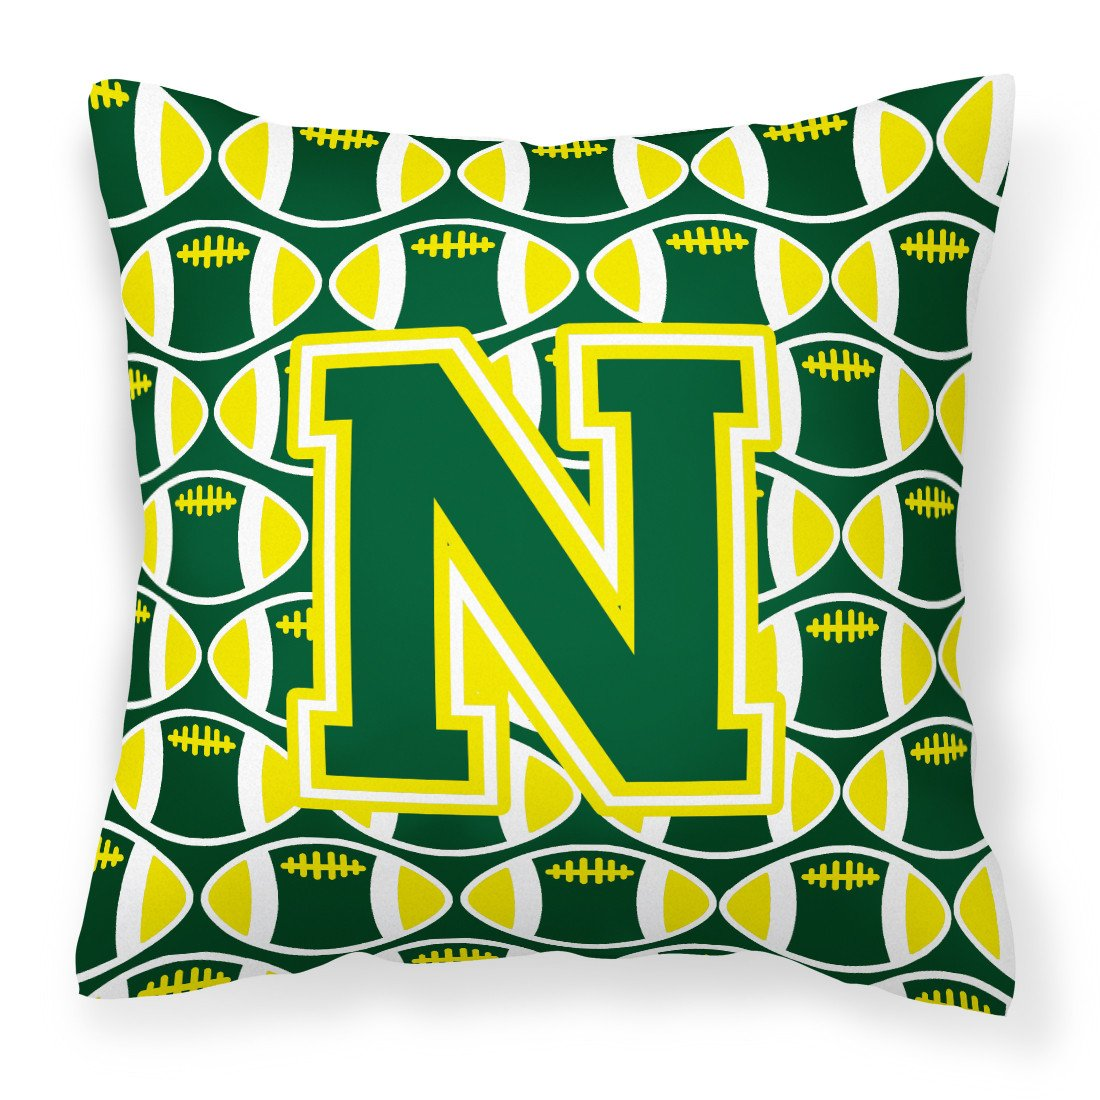 Letter N Football Green and Yellow Fabric Decorative Pillow CJ1075-NPW1414 by Caroline's Treasures